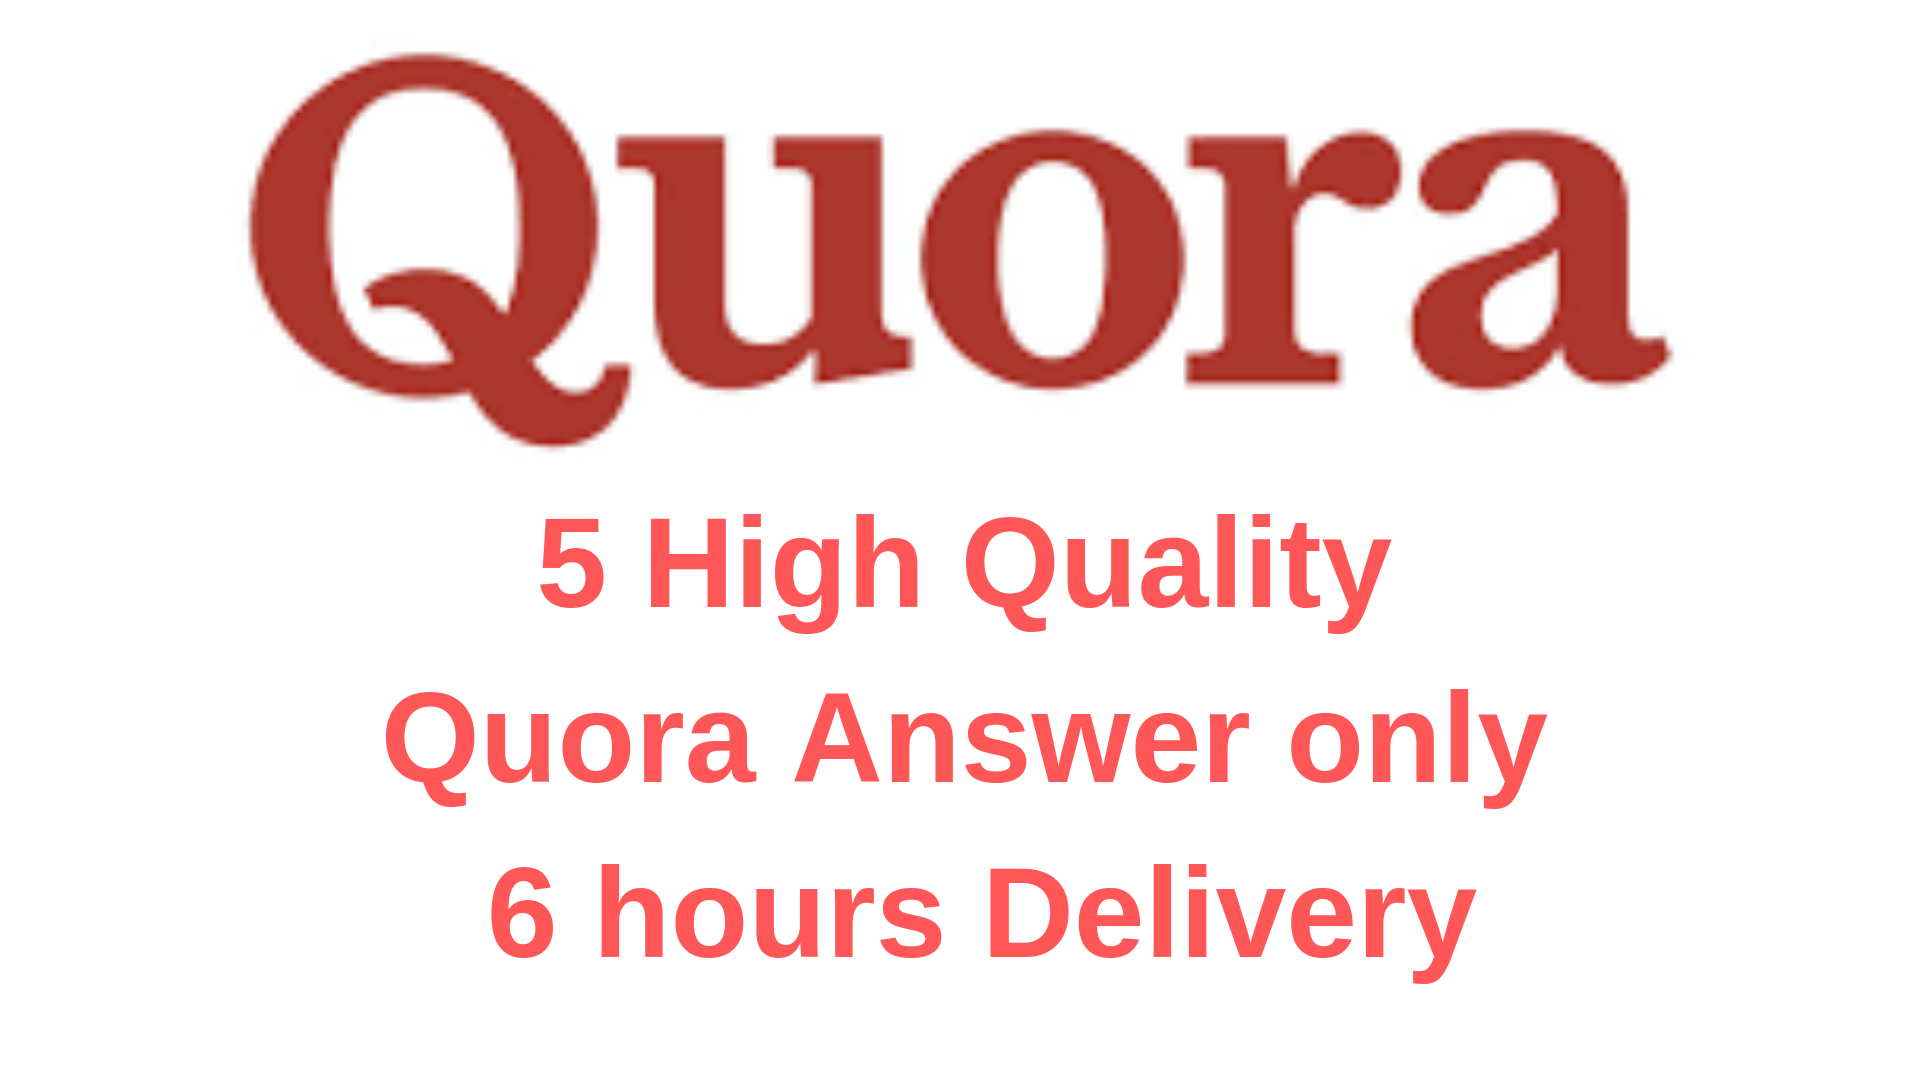 5 High quality Quora answer only 6 hours